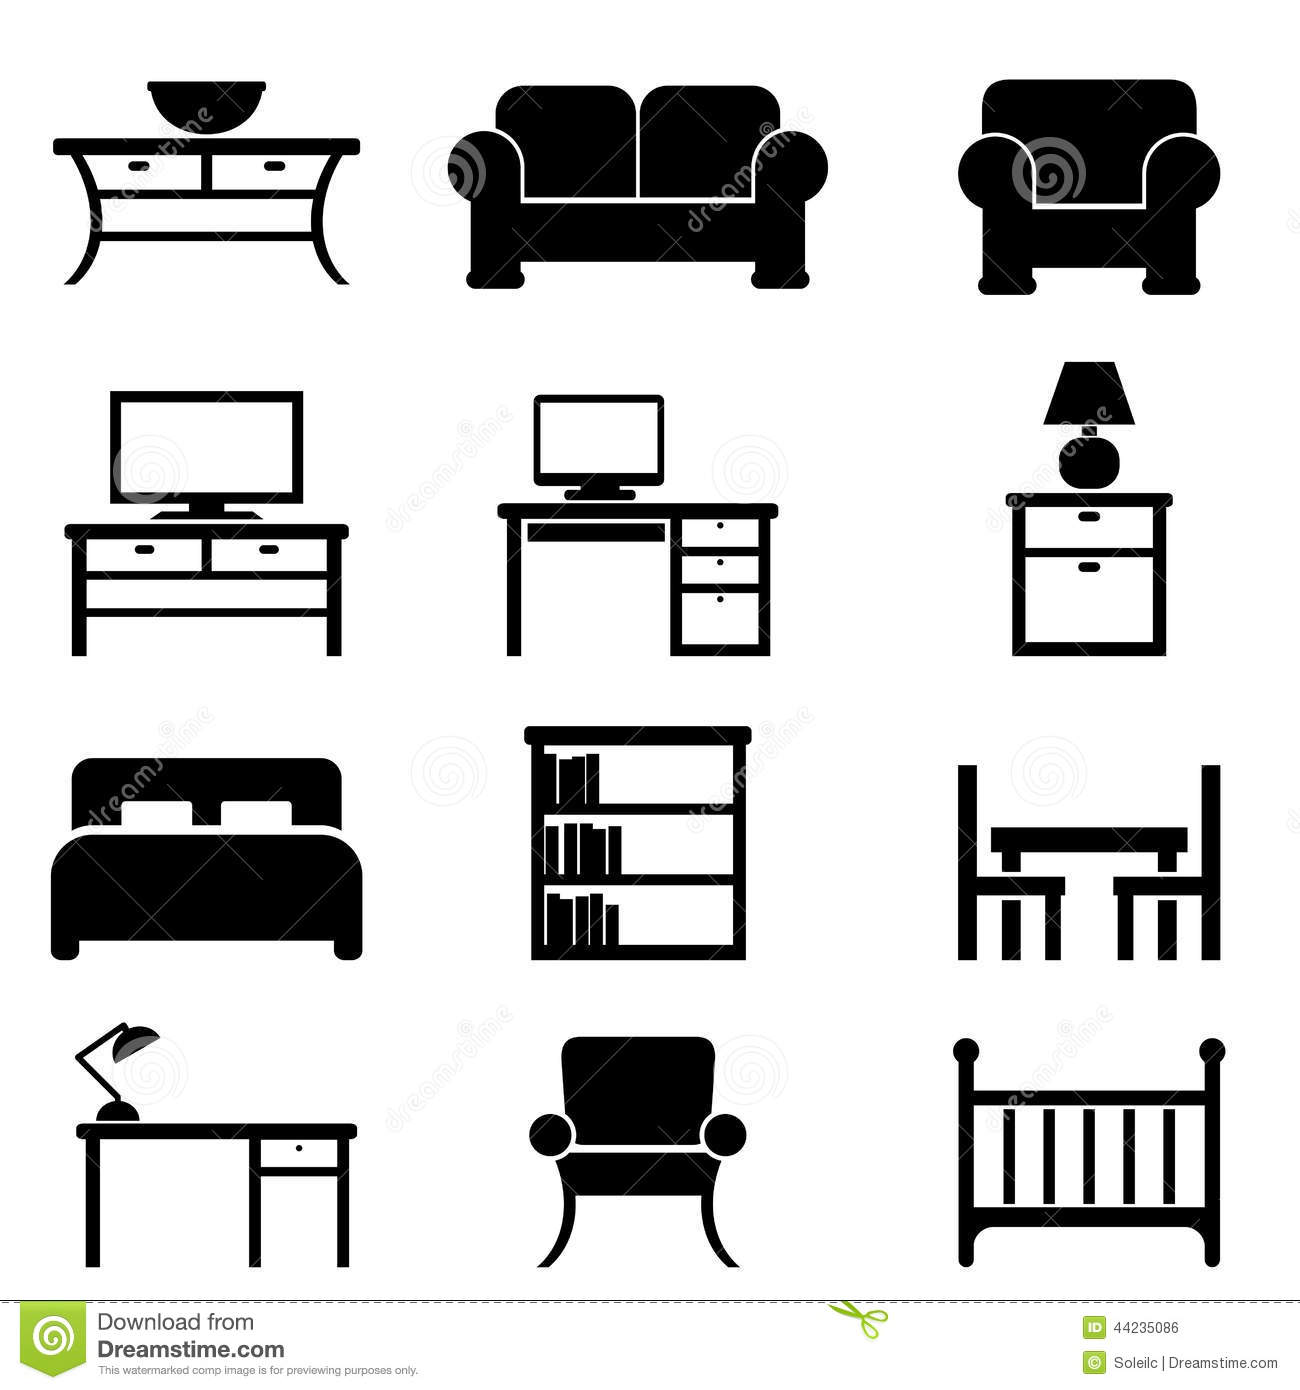 Stock Illustration Home Furniture Icons Icon Set Black Image44235086 additionally Simple House Plan With Bedrooms Bedroom Bath House Plans Simple House Plan With Bedrooms Friv in addition Cars New Jersey Temporary Plates also Kortia Console Table Antique Bronze as well Armchair 2016. on sofa bed and set 2